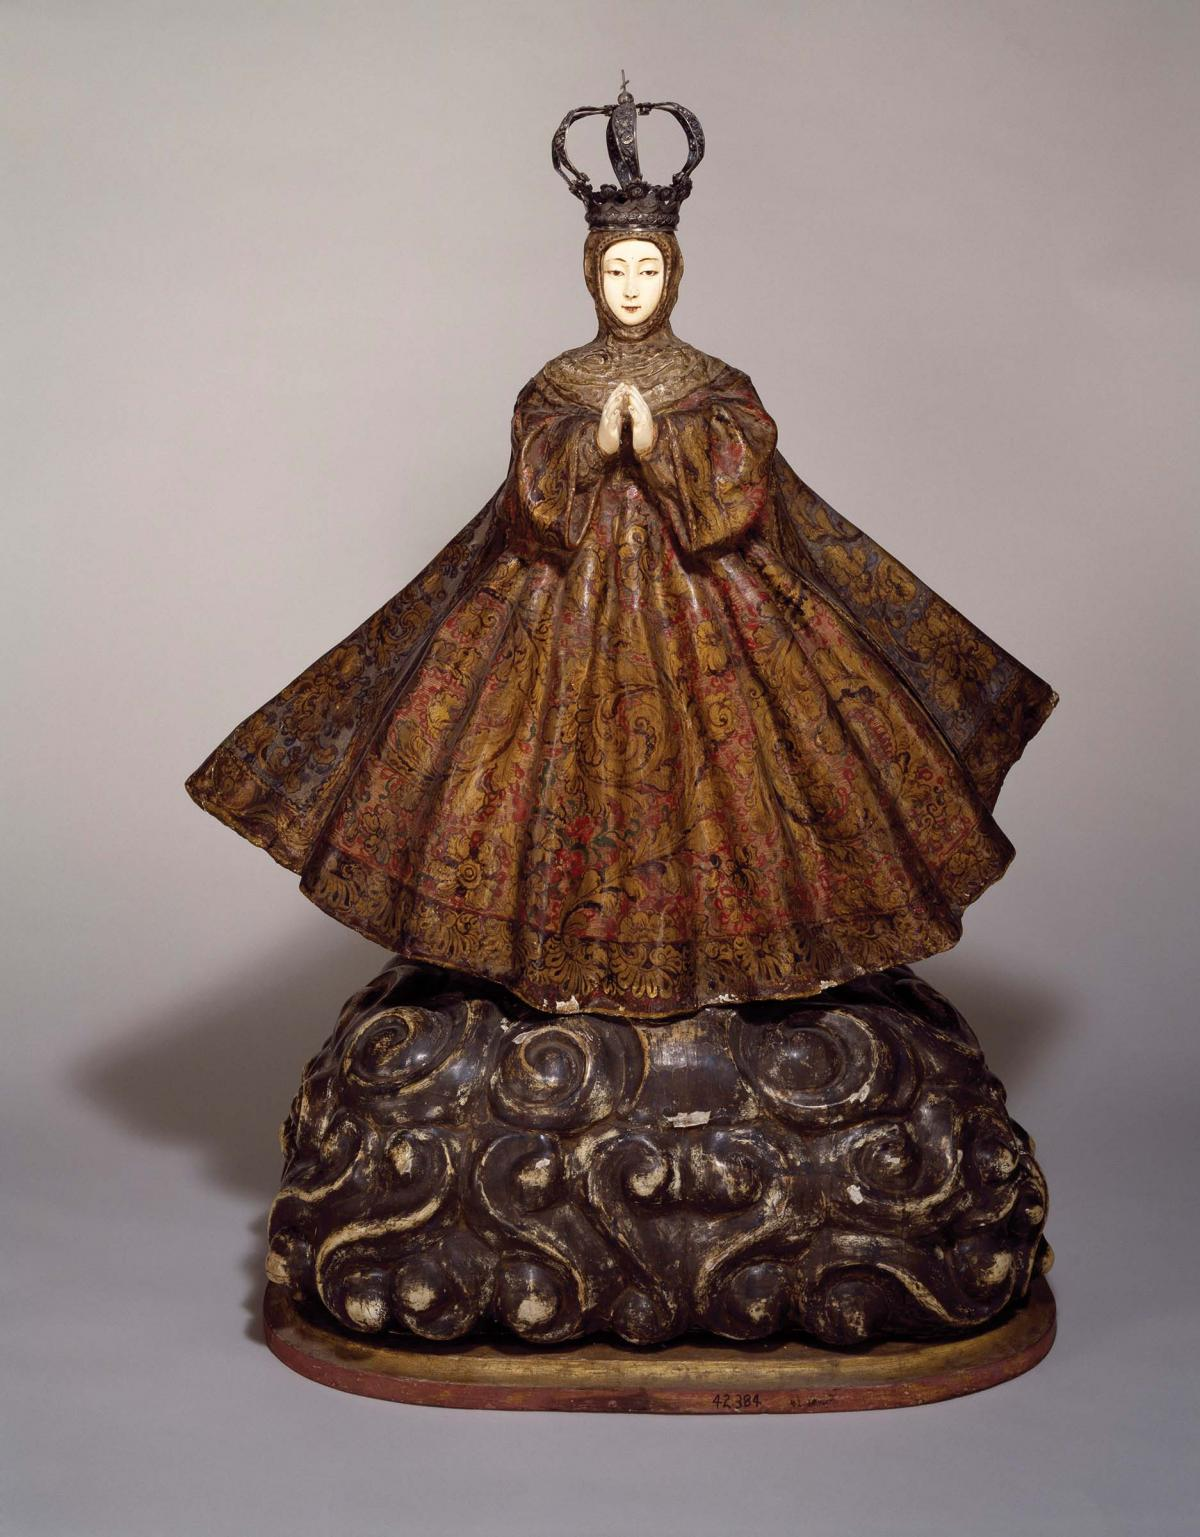 ivory statue of Mary, wearing a wide, brown, embroidered skirt and crown